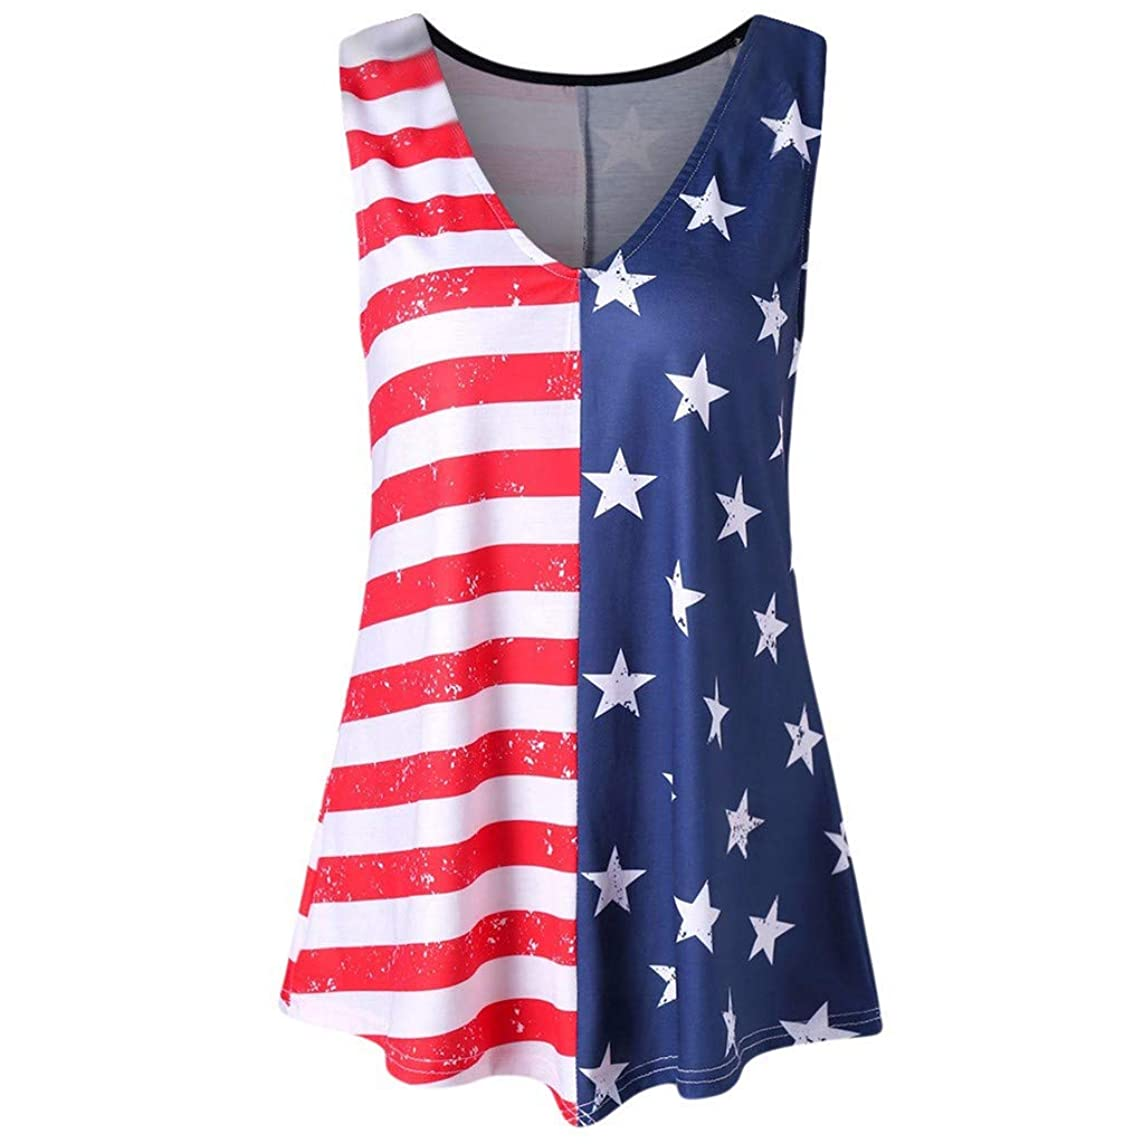 MTENG Fashion Women Stripe America Flag Printed V-Neck Sleeveless Tank Up Blouse 4th of July Independence Day